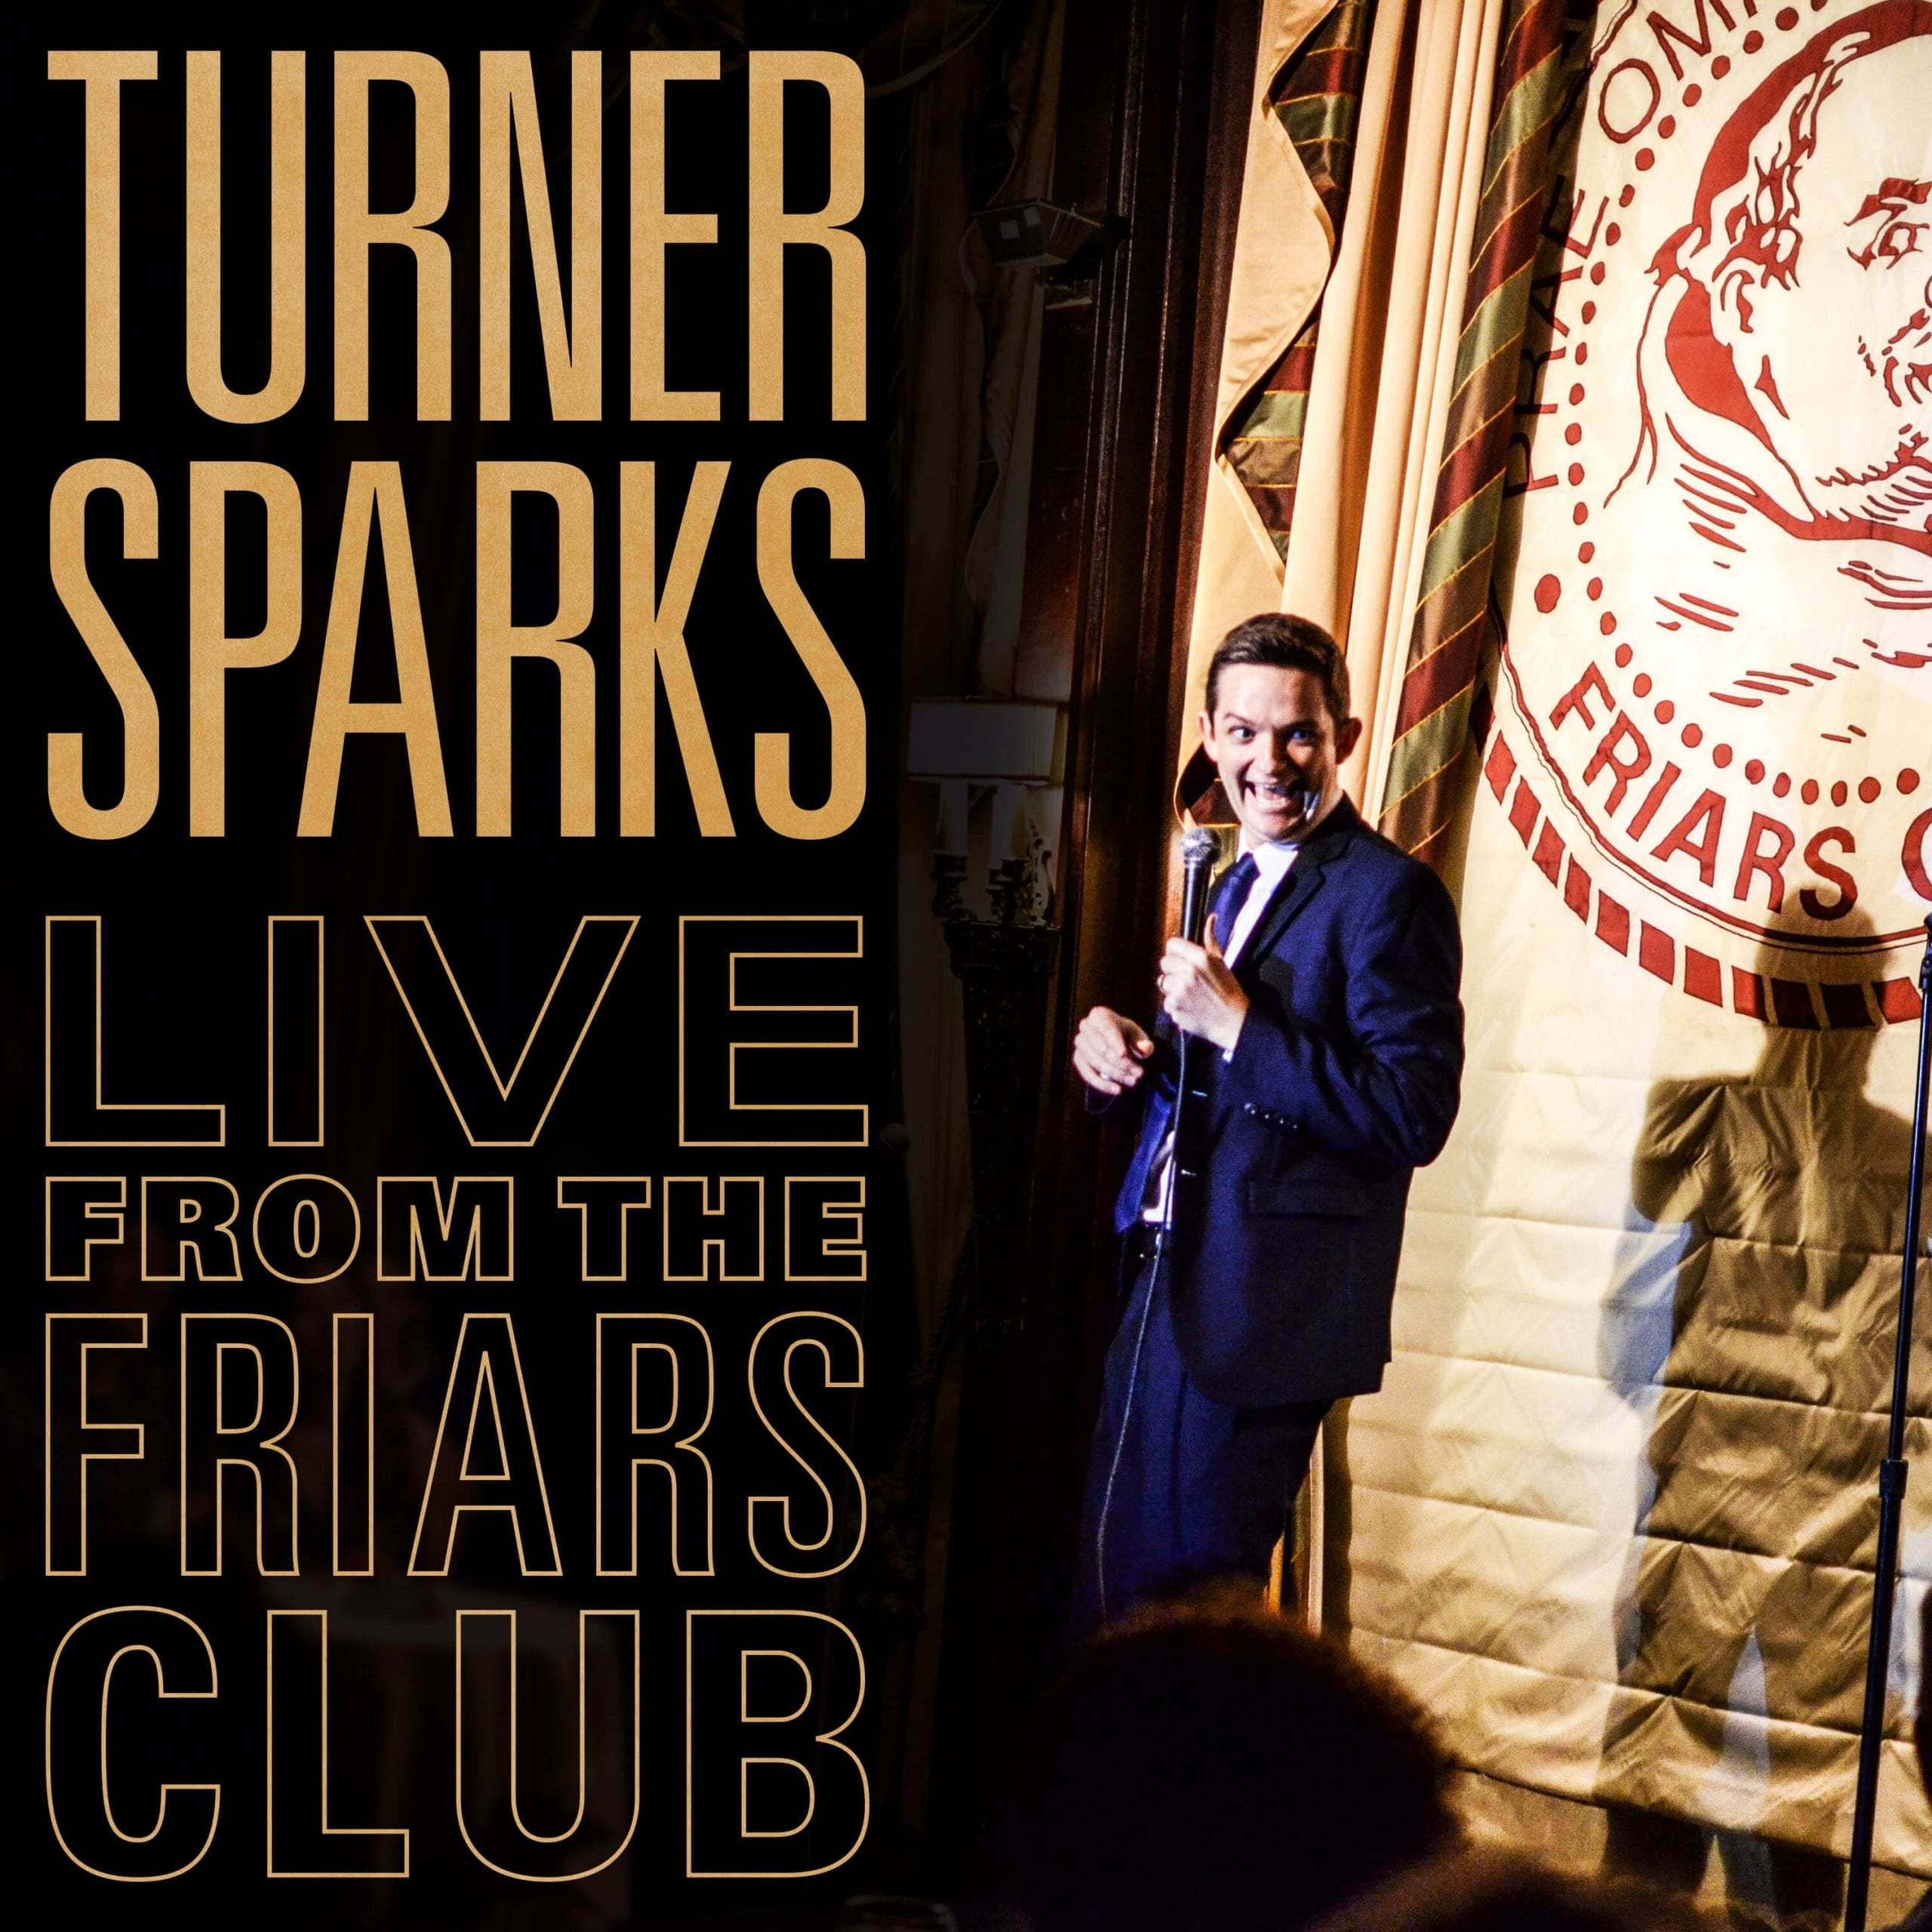 Turner Sparks live from the friars club